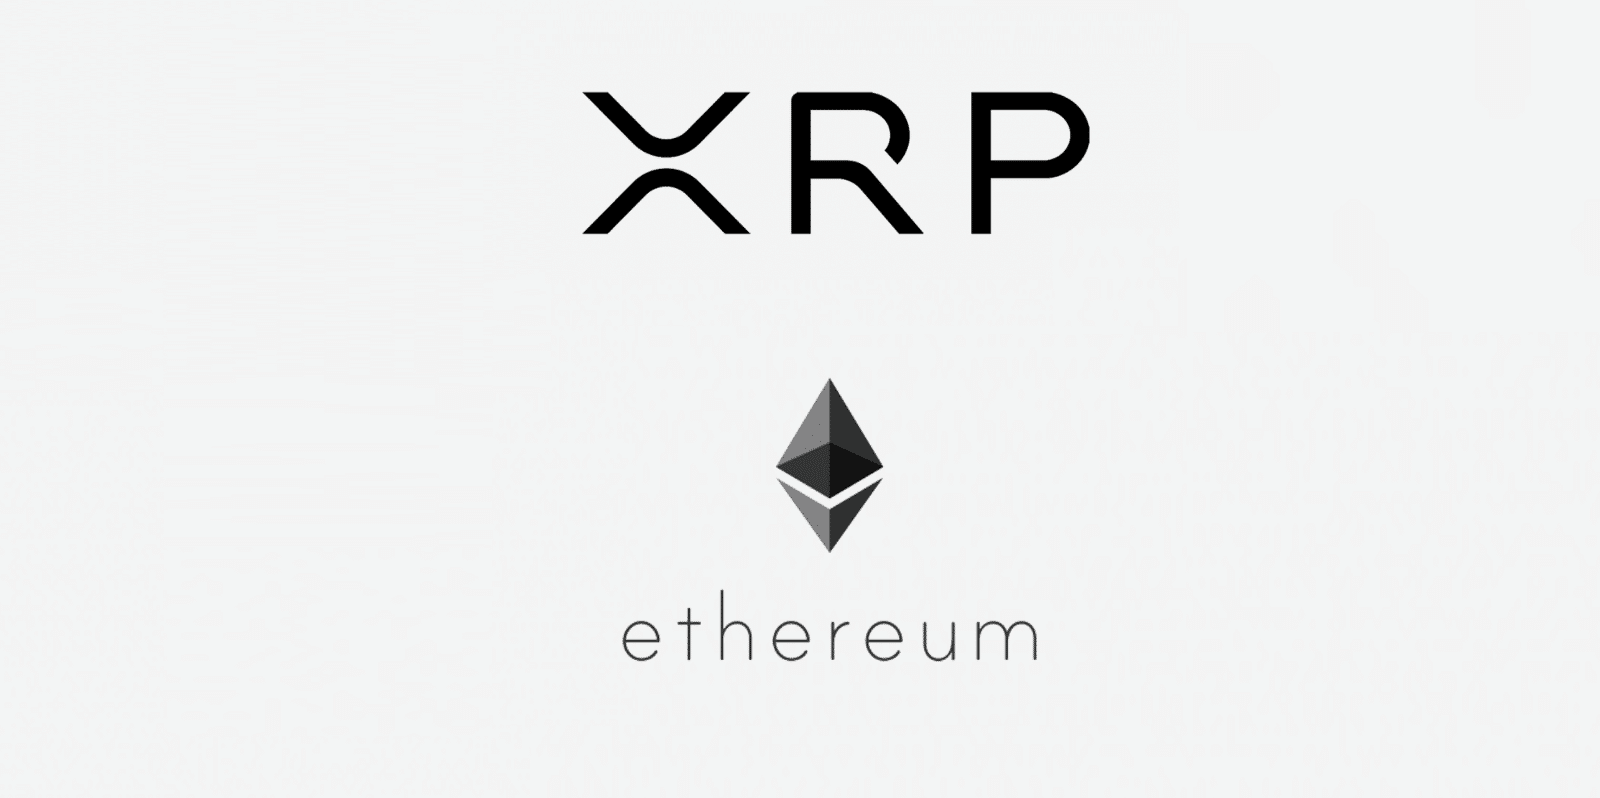 Which is better, Ripple or Ethereum?